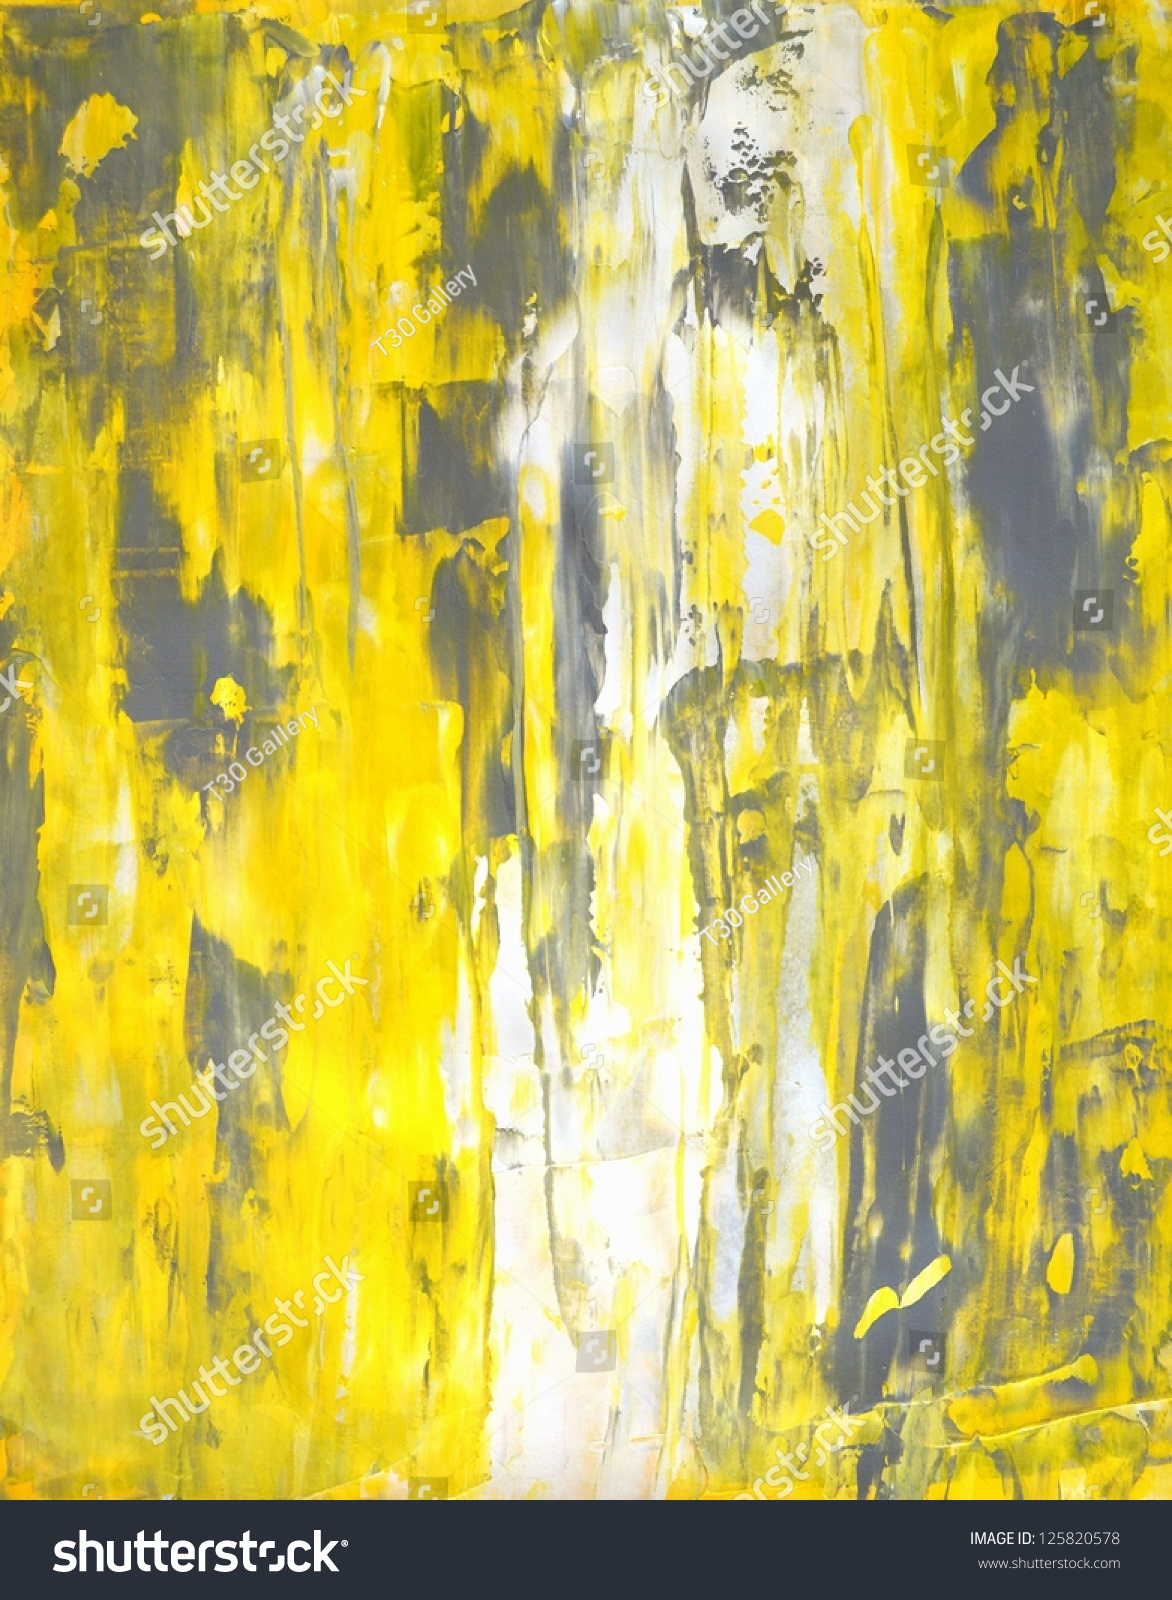 Grey And Yellow Abstract Art Painting Stock Photo ...Yellow Abstract Painting